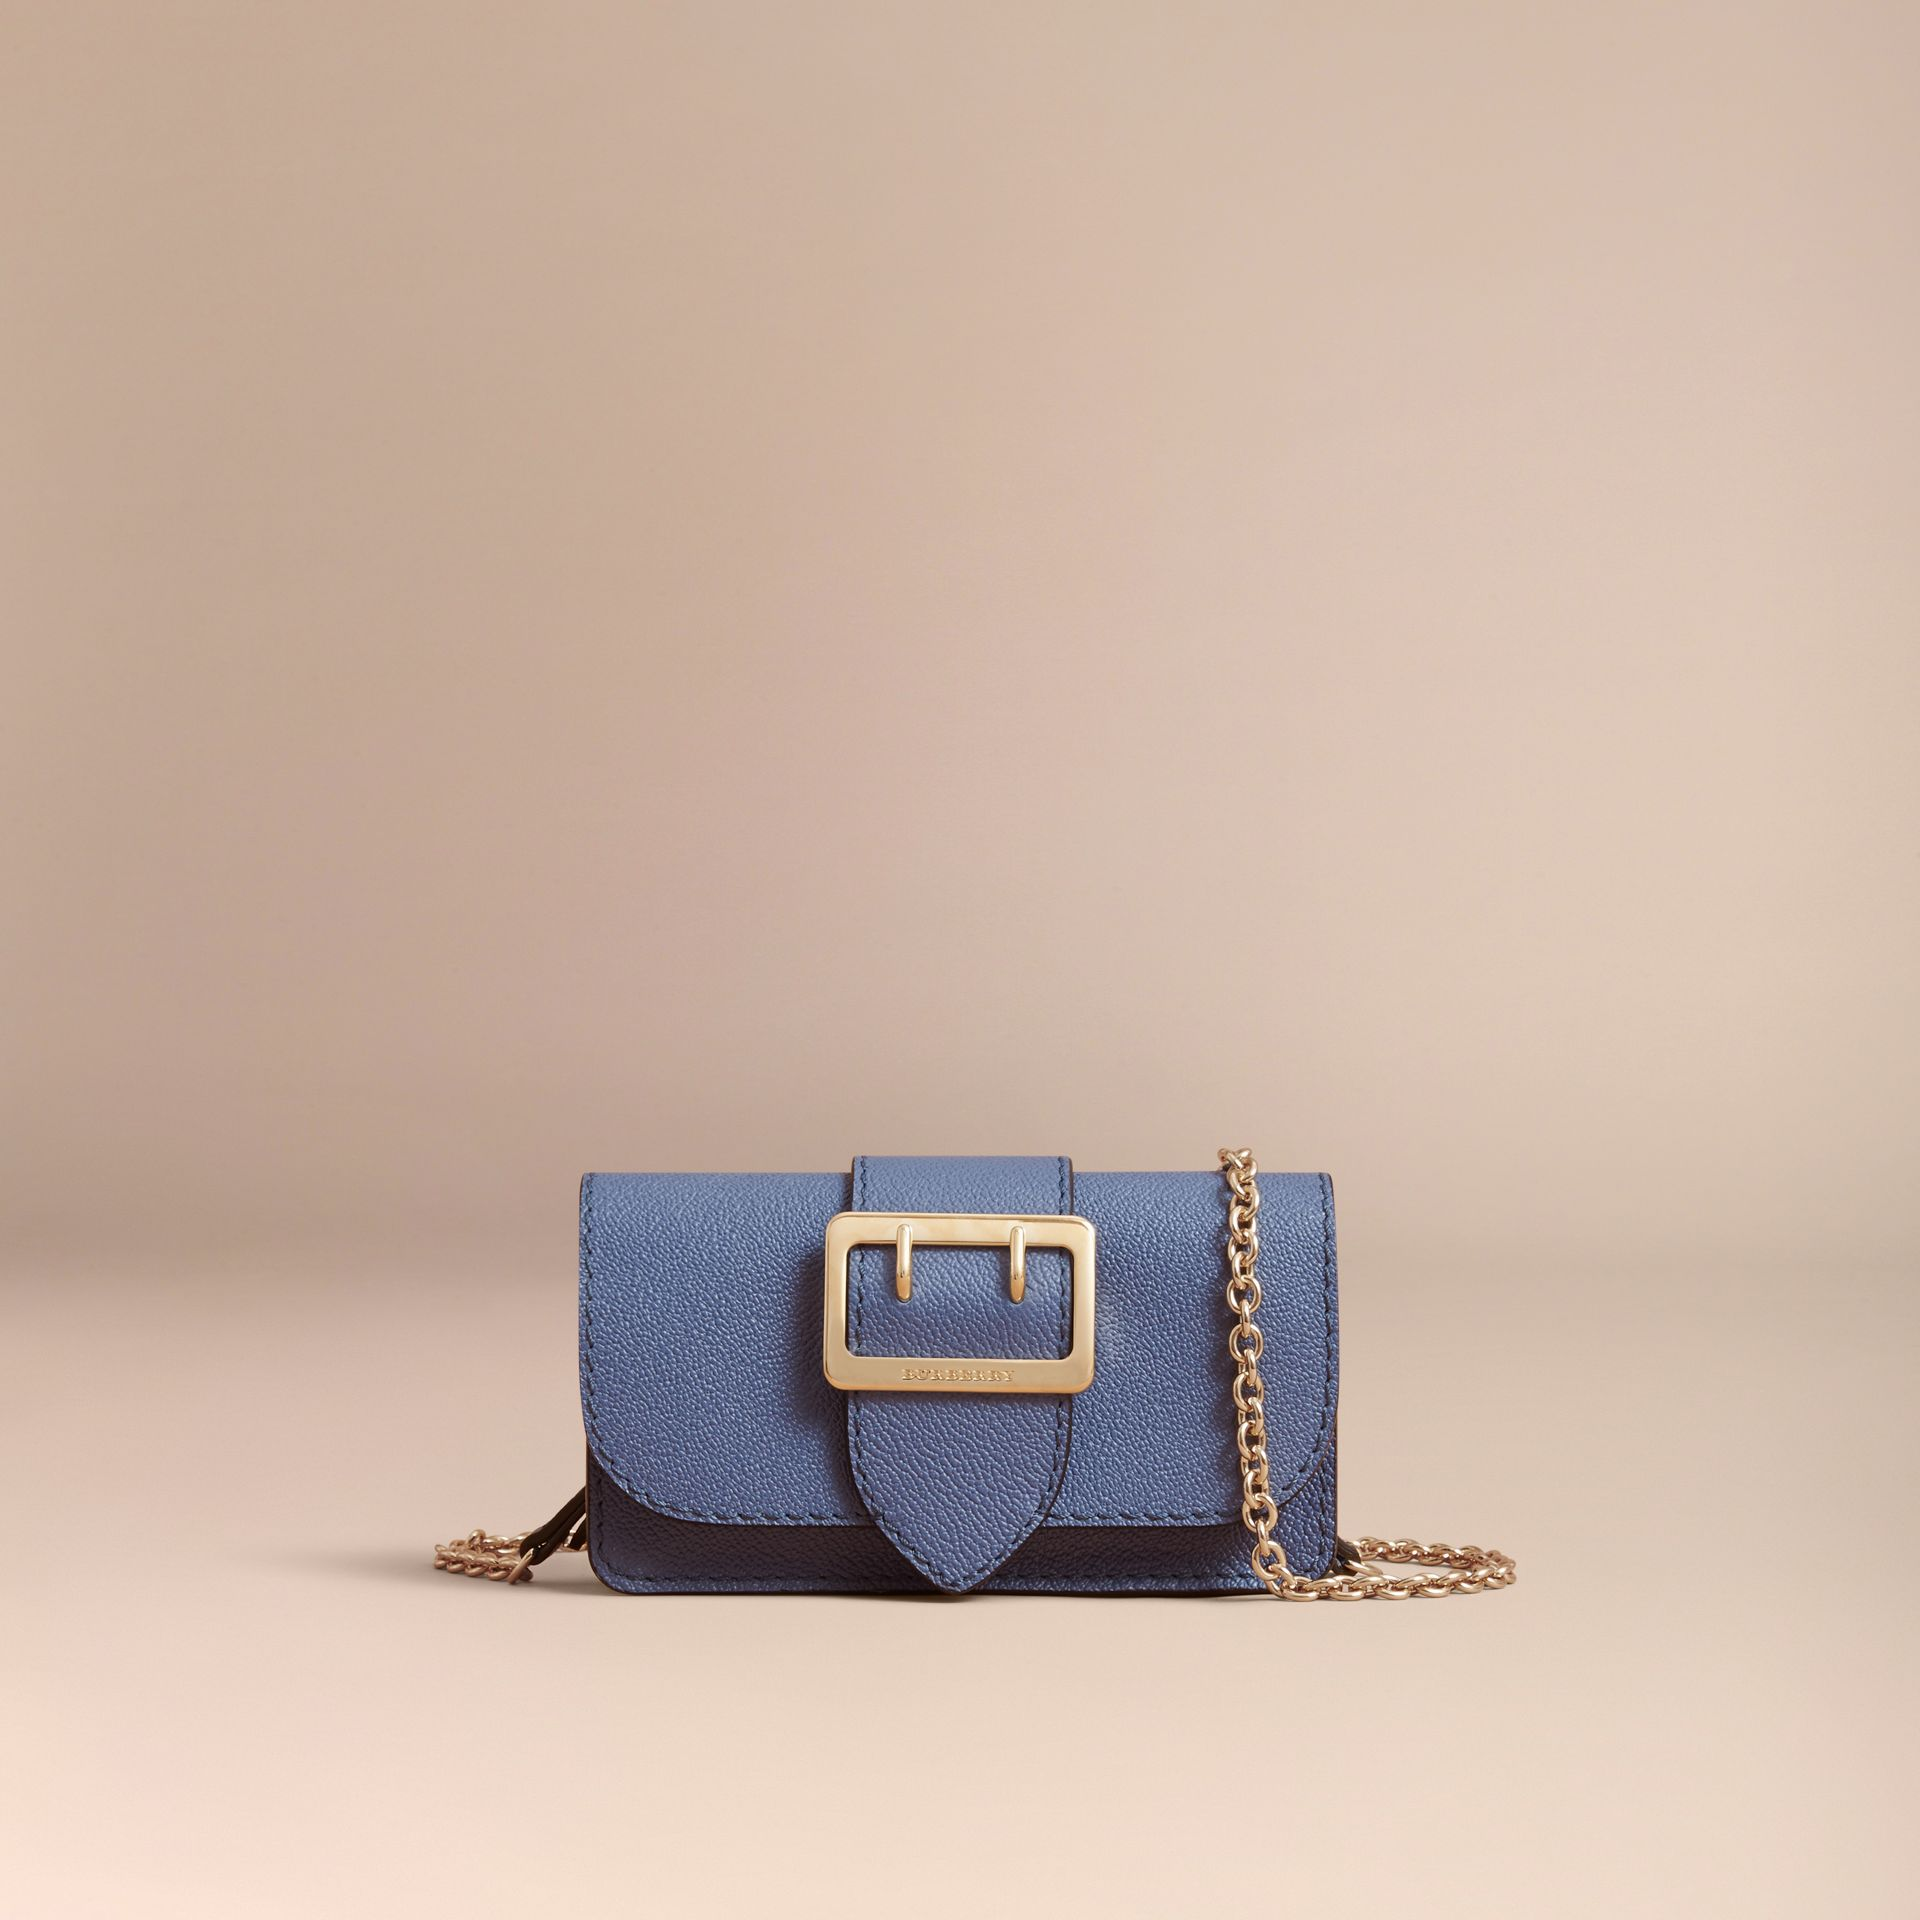 The Mini Buckle Bag in Grainy Leather in Steel Blue - Women | Burberry - gallery image 5